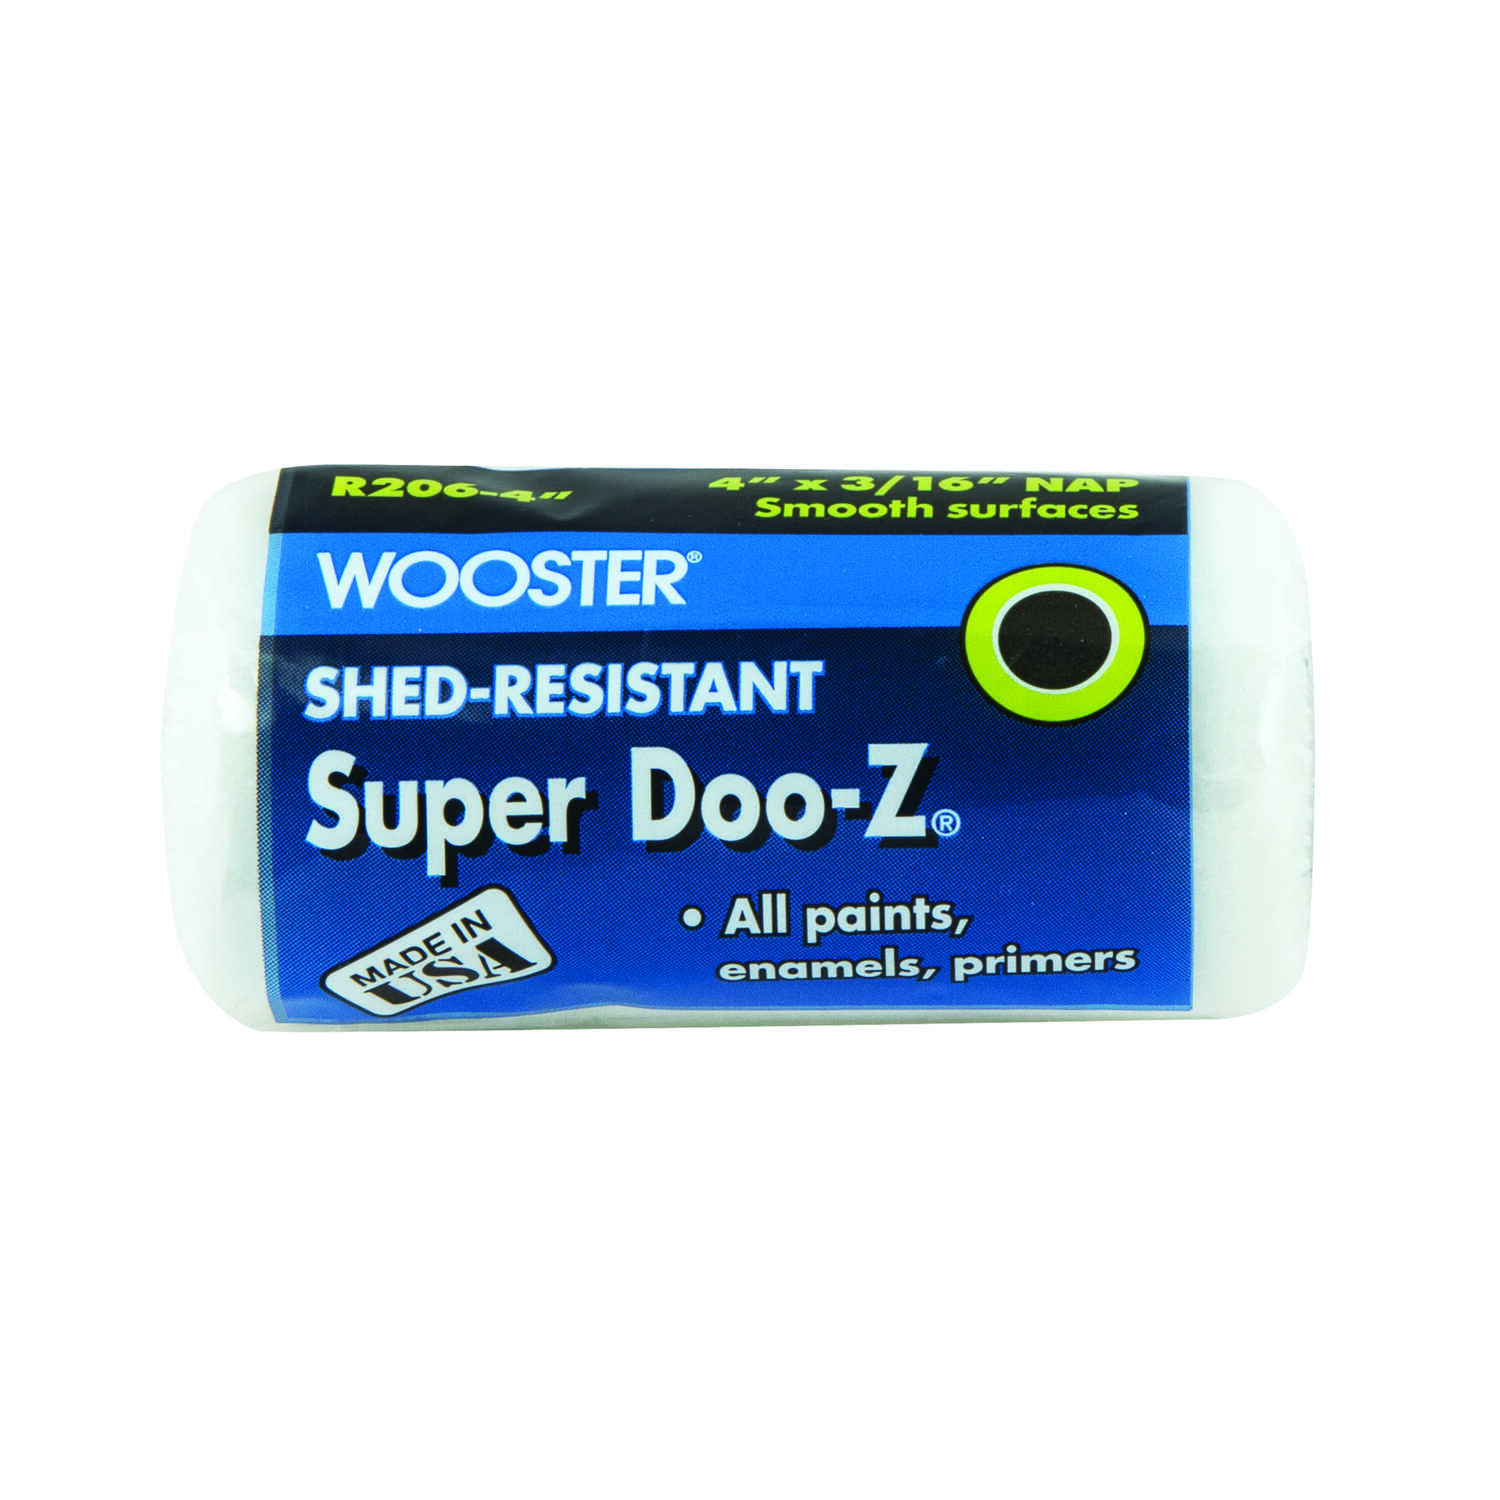 Wooster  Super Doo-Z  Fabric  3/16 in.  x 4 in. W Paint Roller Cover  For Smooth Surfaces 1 pk